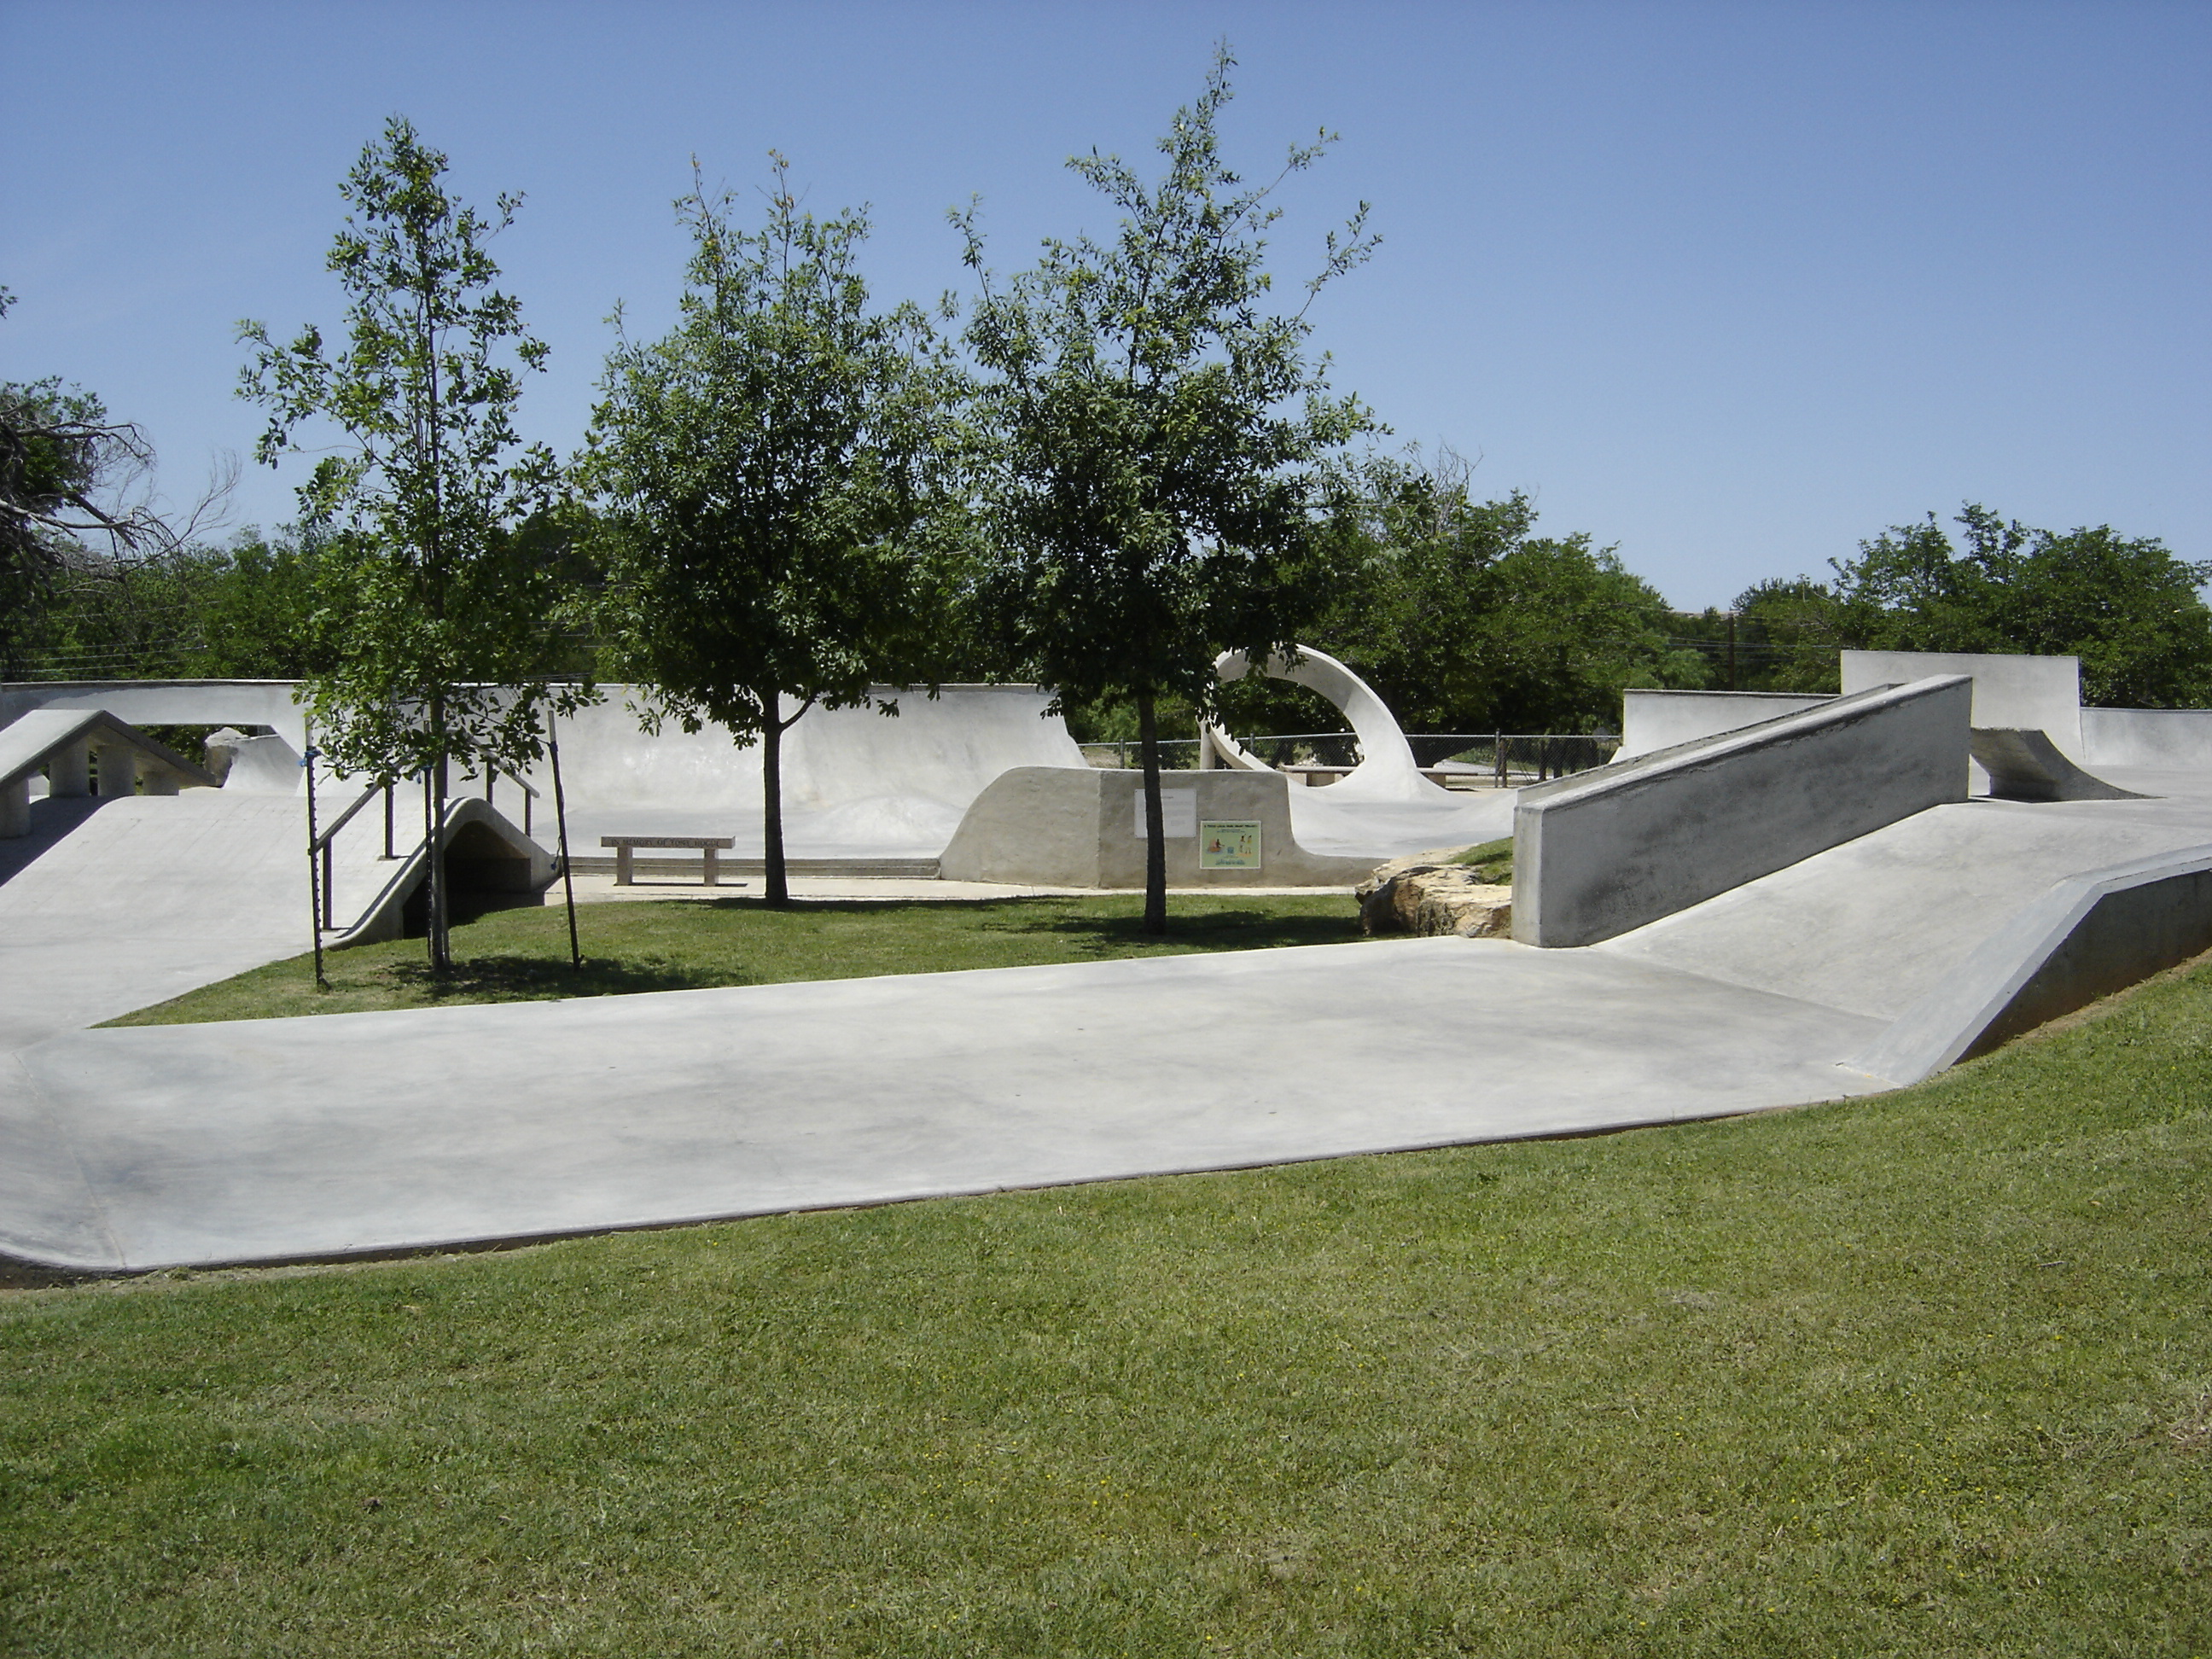 Grassy area with trees in the center of the skate park.